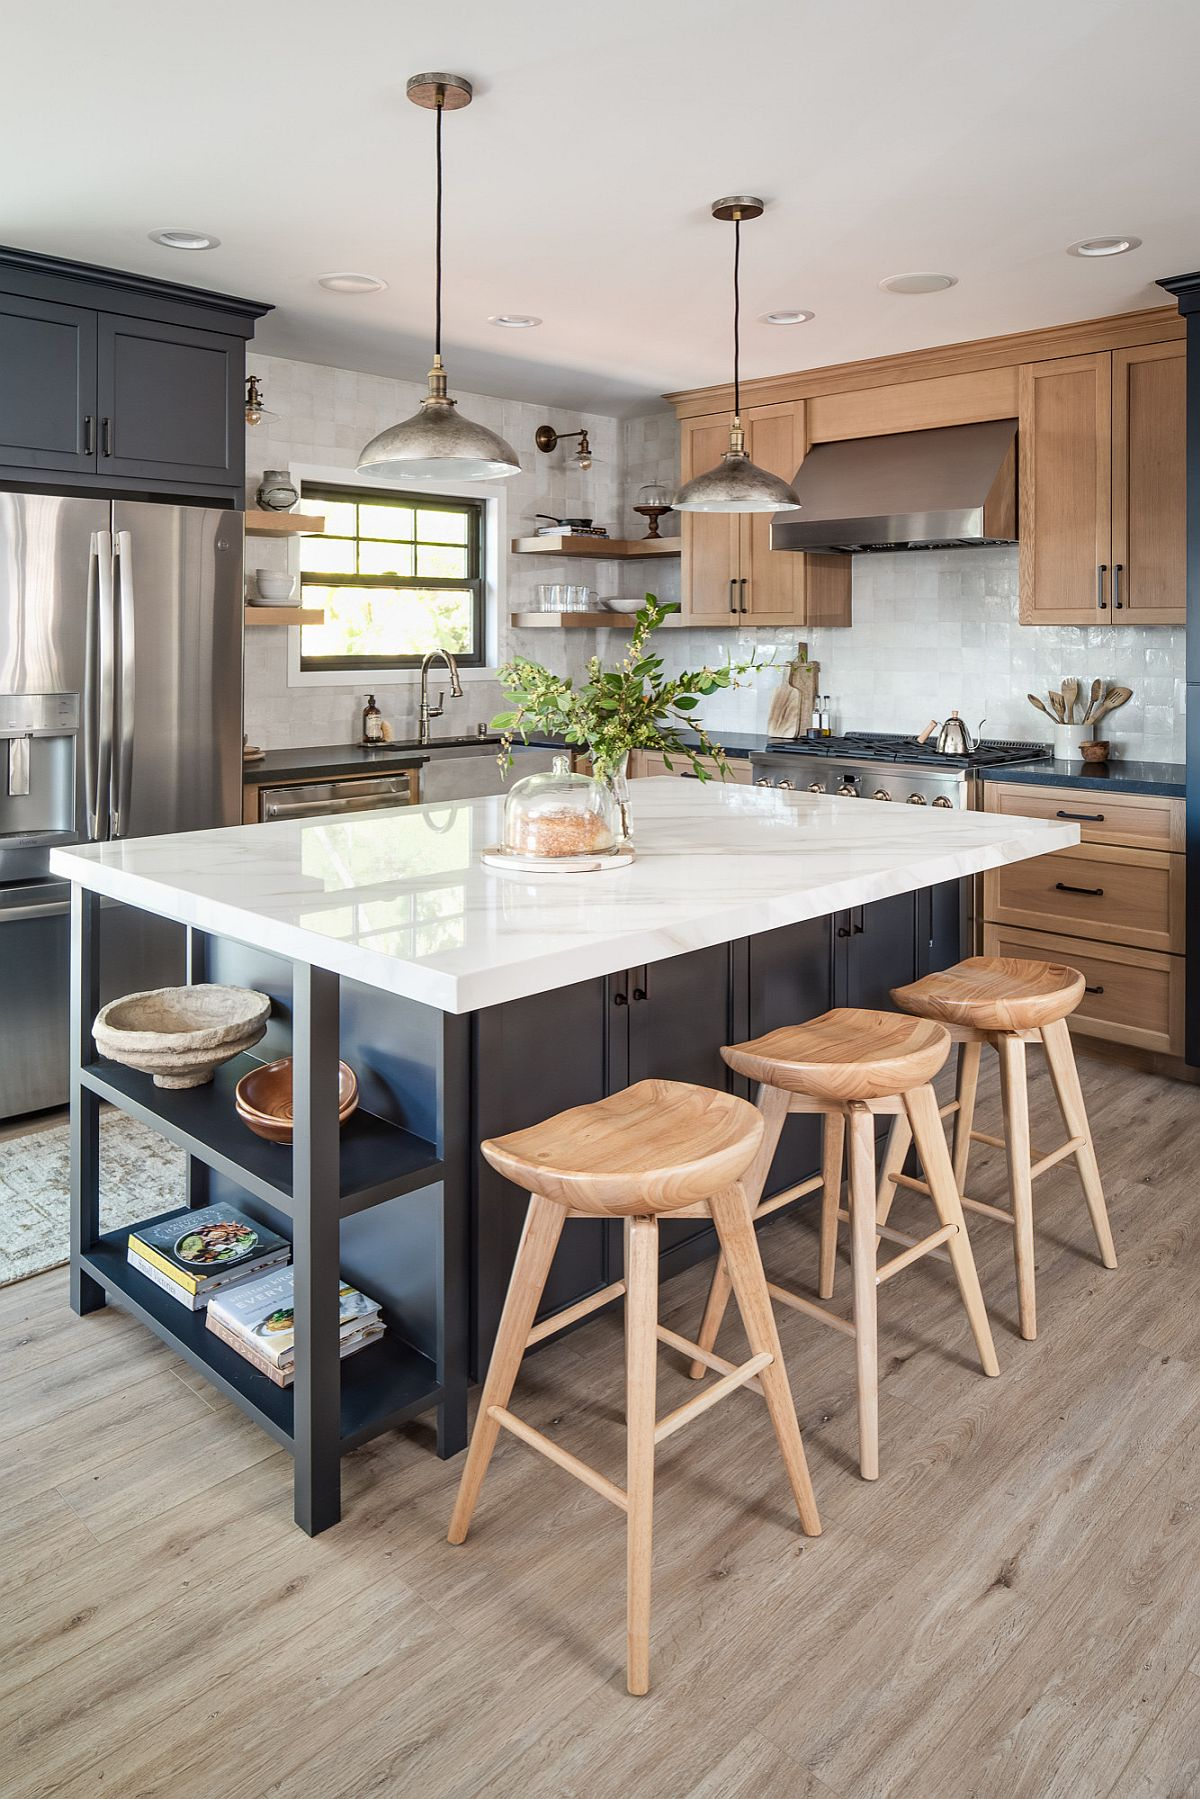 Add open shelves to your kitchen island to give it a more eye-catching appeal